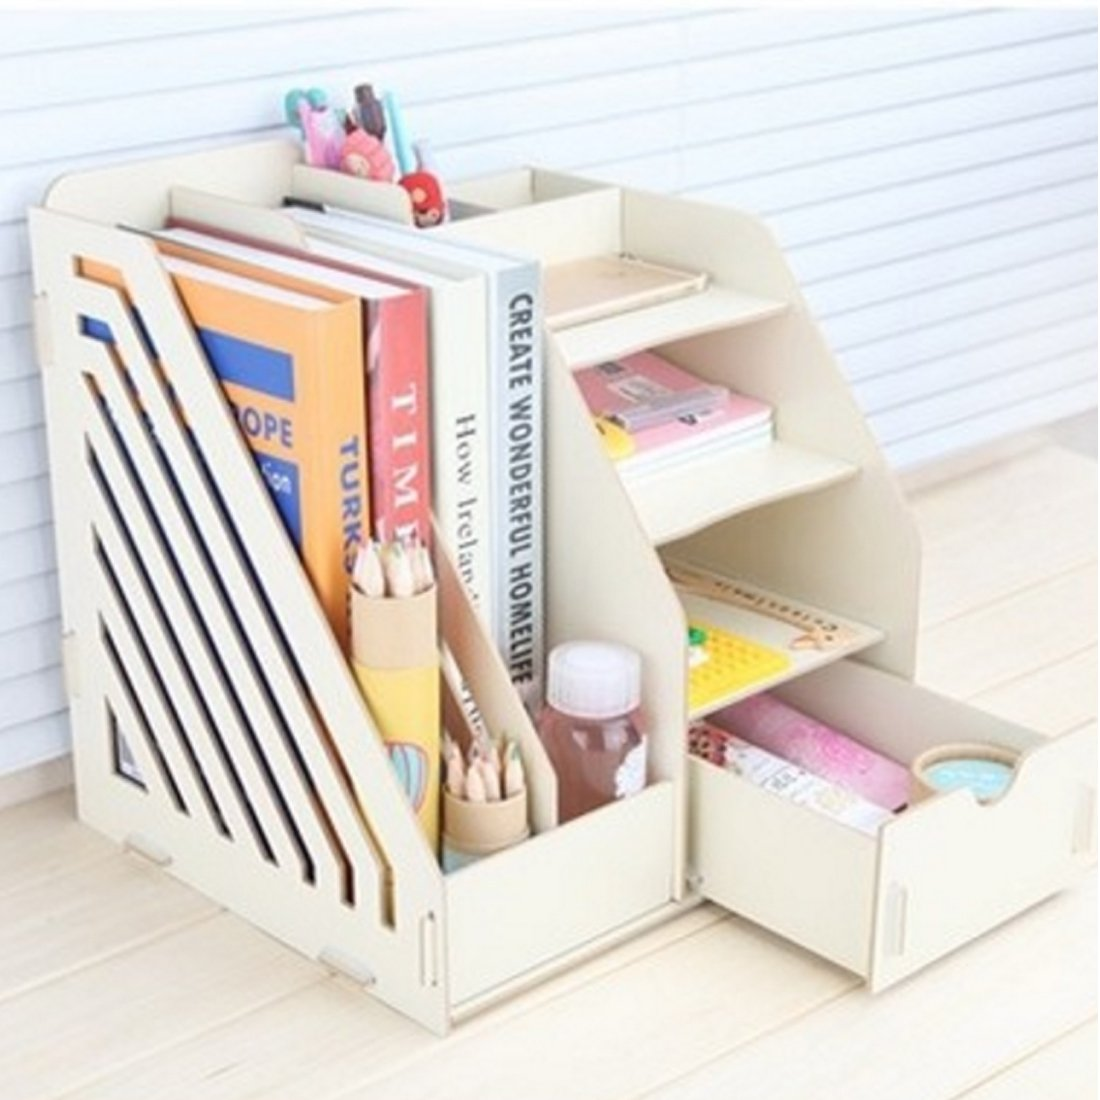 PeleusTech® Office Wood Desk Organizer with Drawer Expandable Mail Sorter Desktop Stationary Organizer - by PeleusTech® (Image #1)